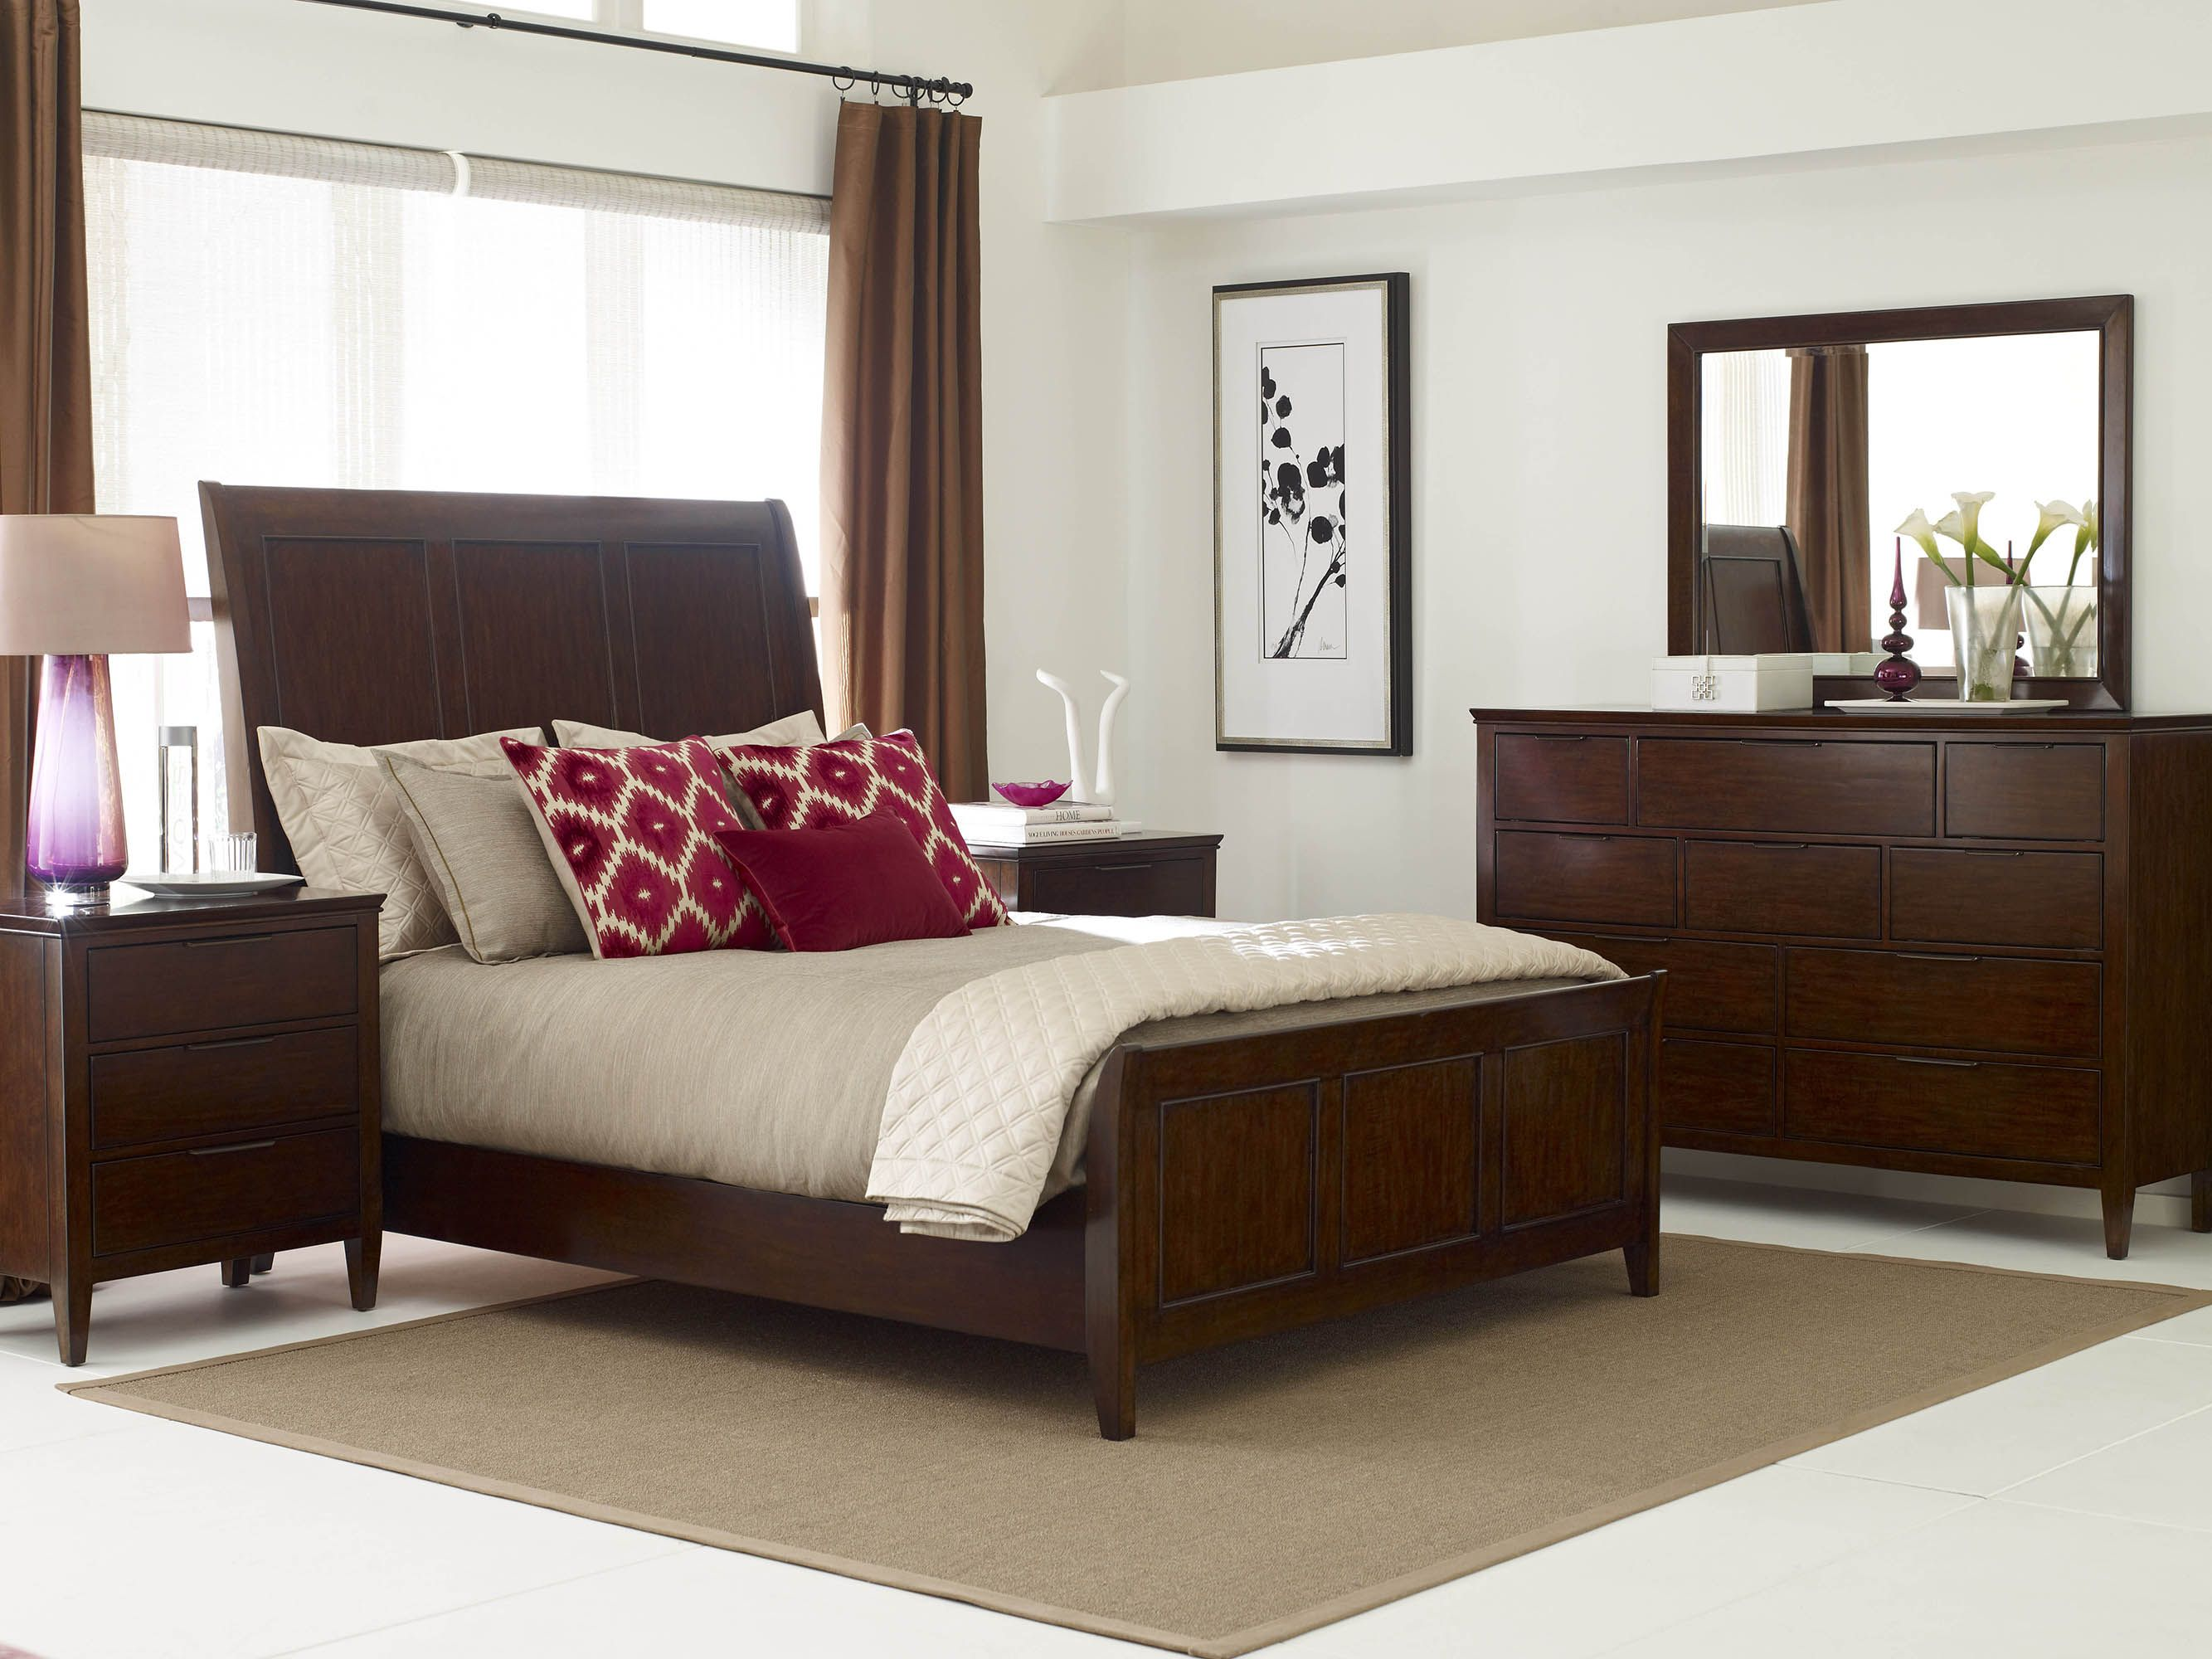 Kincaid Elise Bedroom Furniture Collection